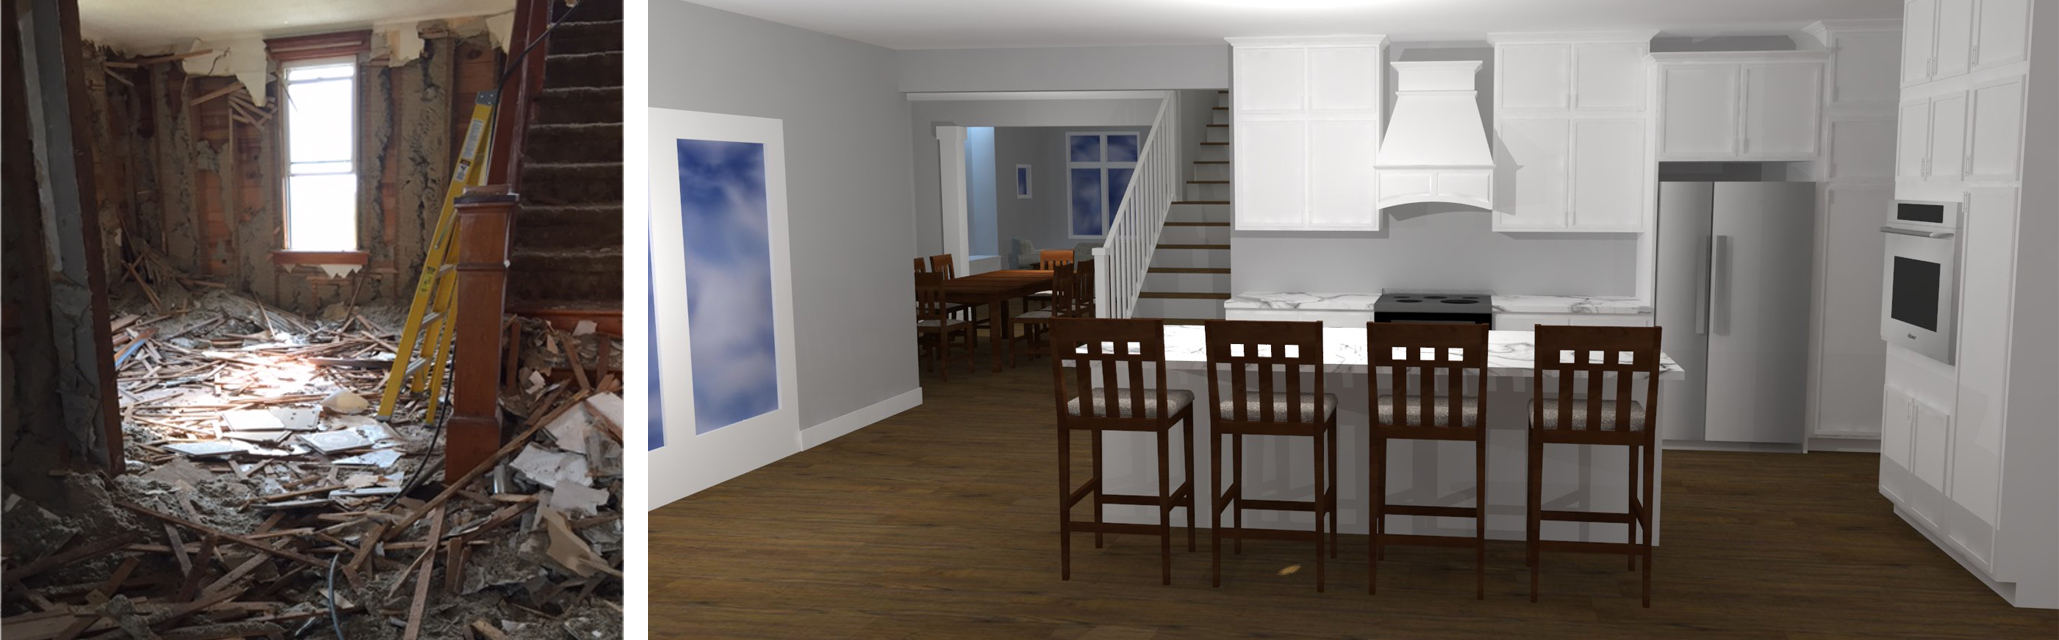 the image on the left shows the start of demolition. the image on the right is our rendering from the same perspective showing the new kitchen and staircase.